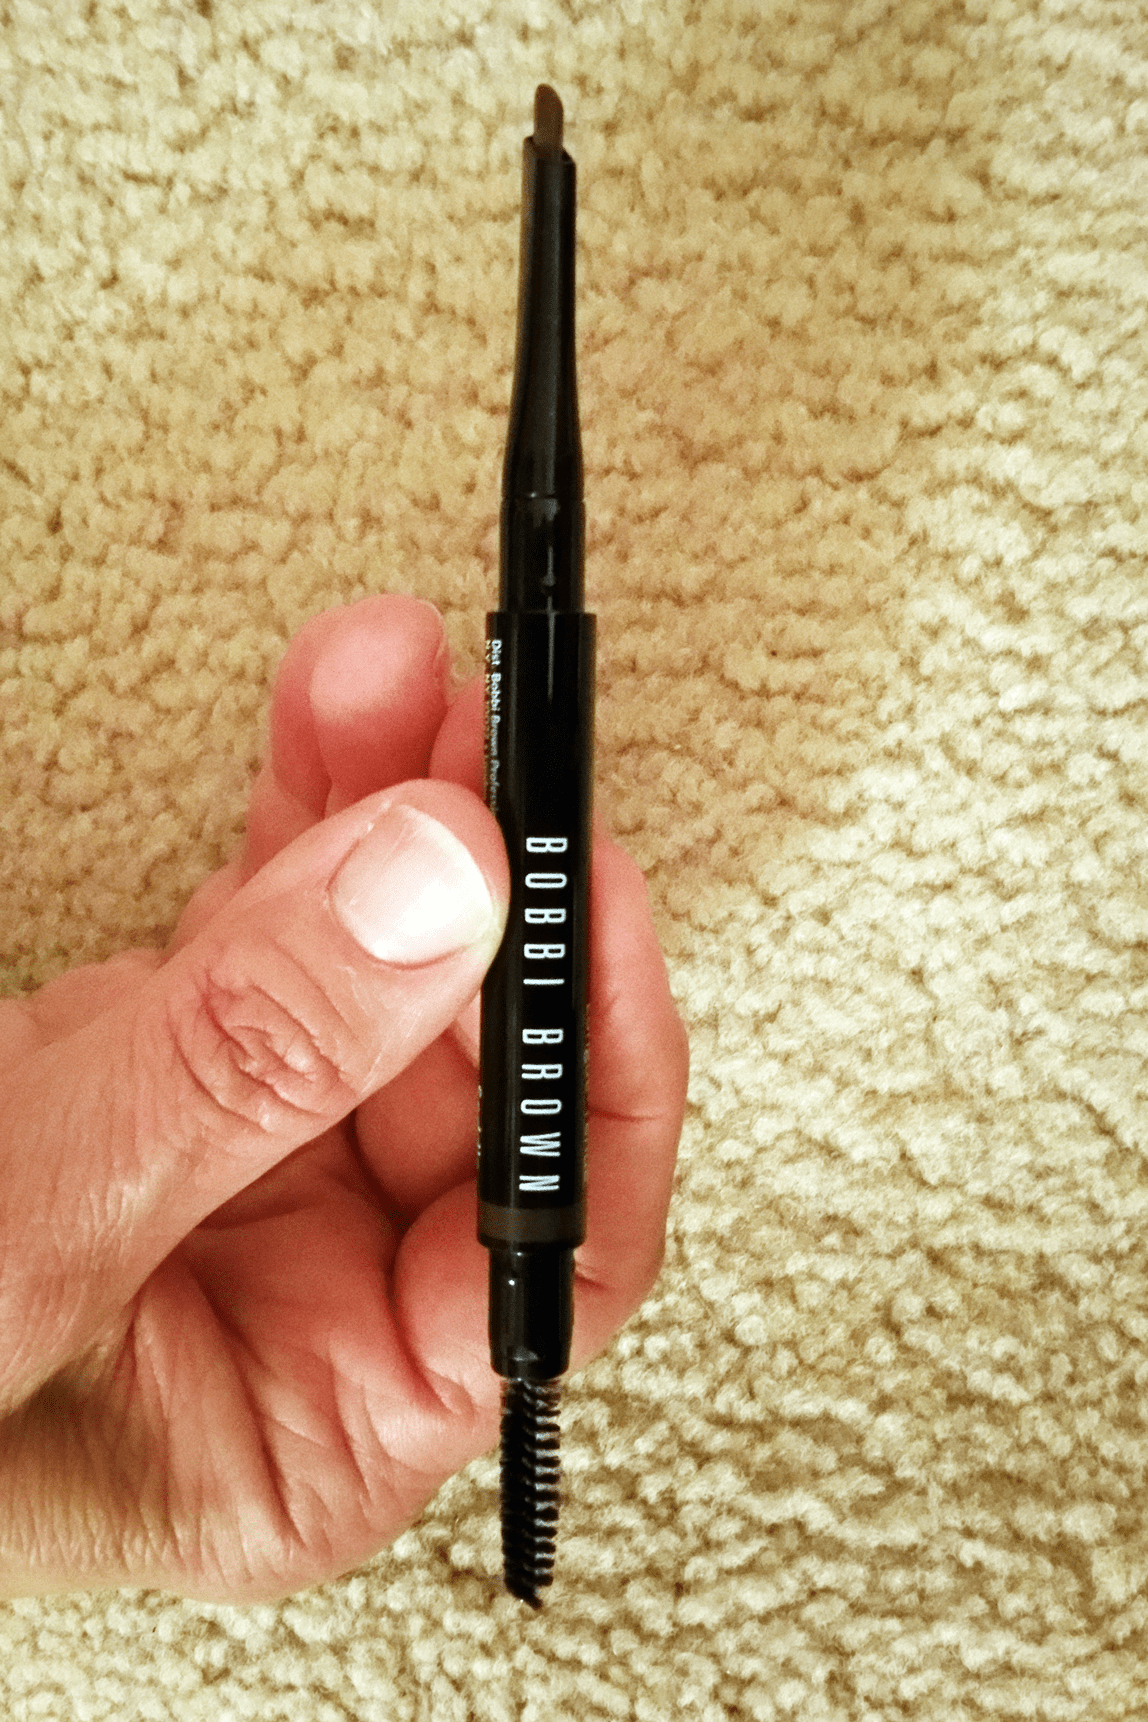 Bobbi Brown - Perfectly Defined Long-Wear Brow Pencil - Her Quarters